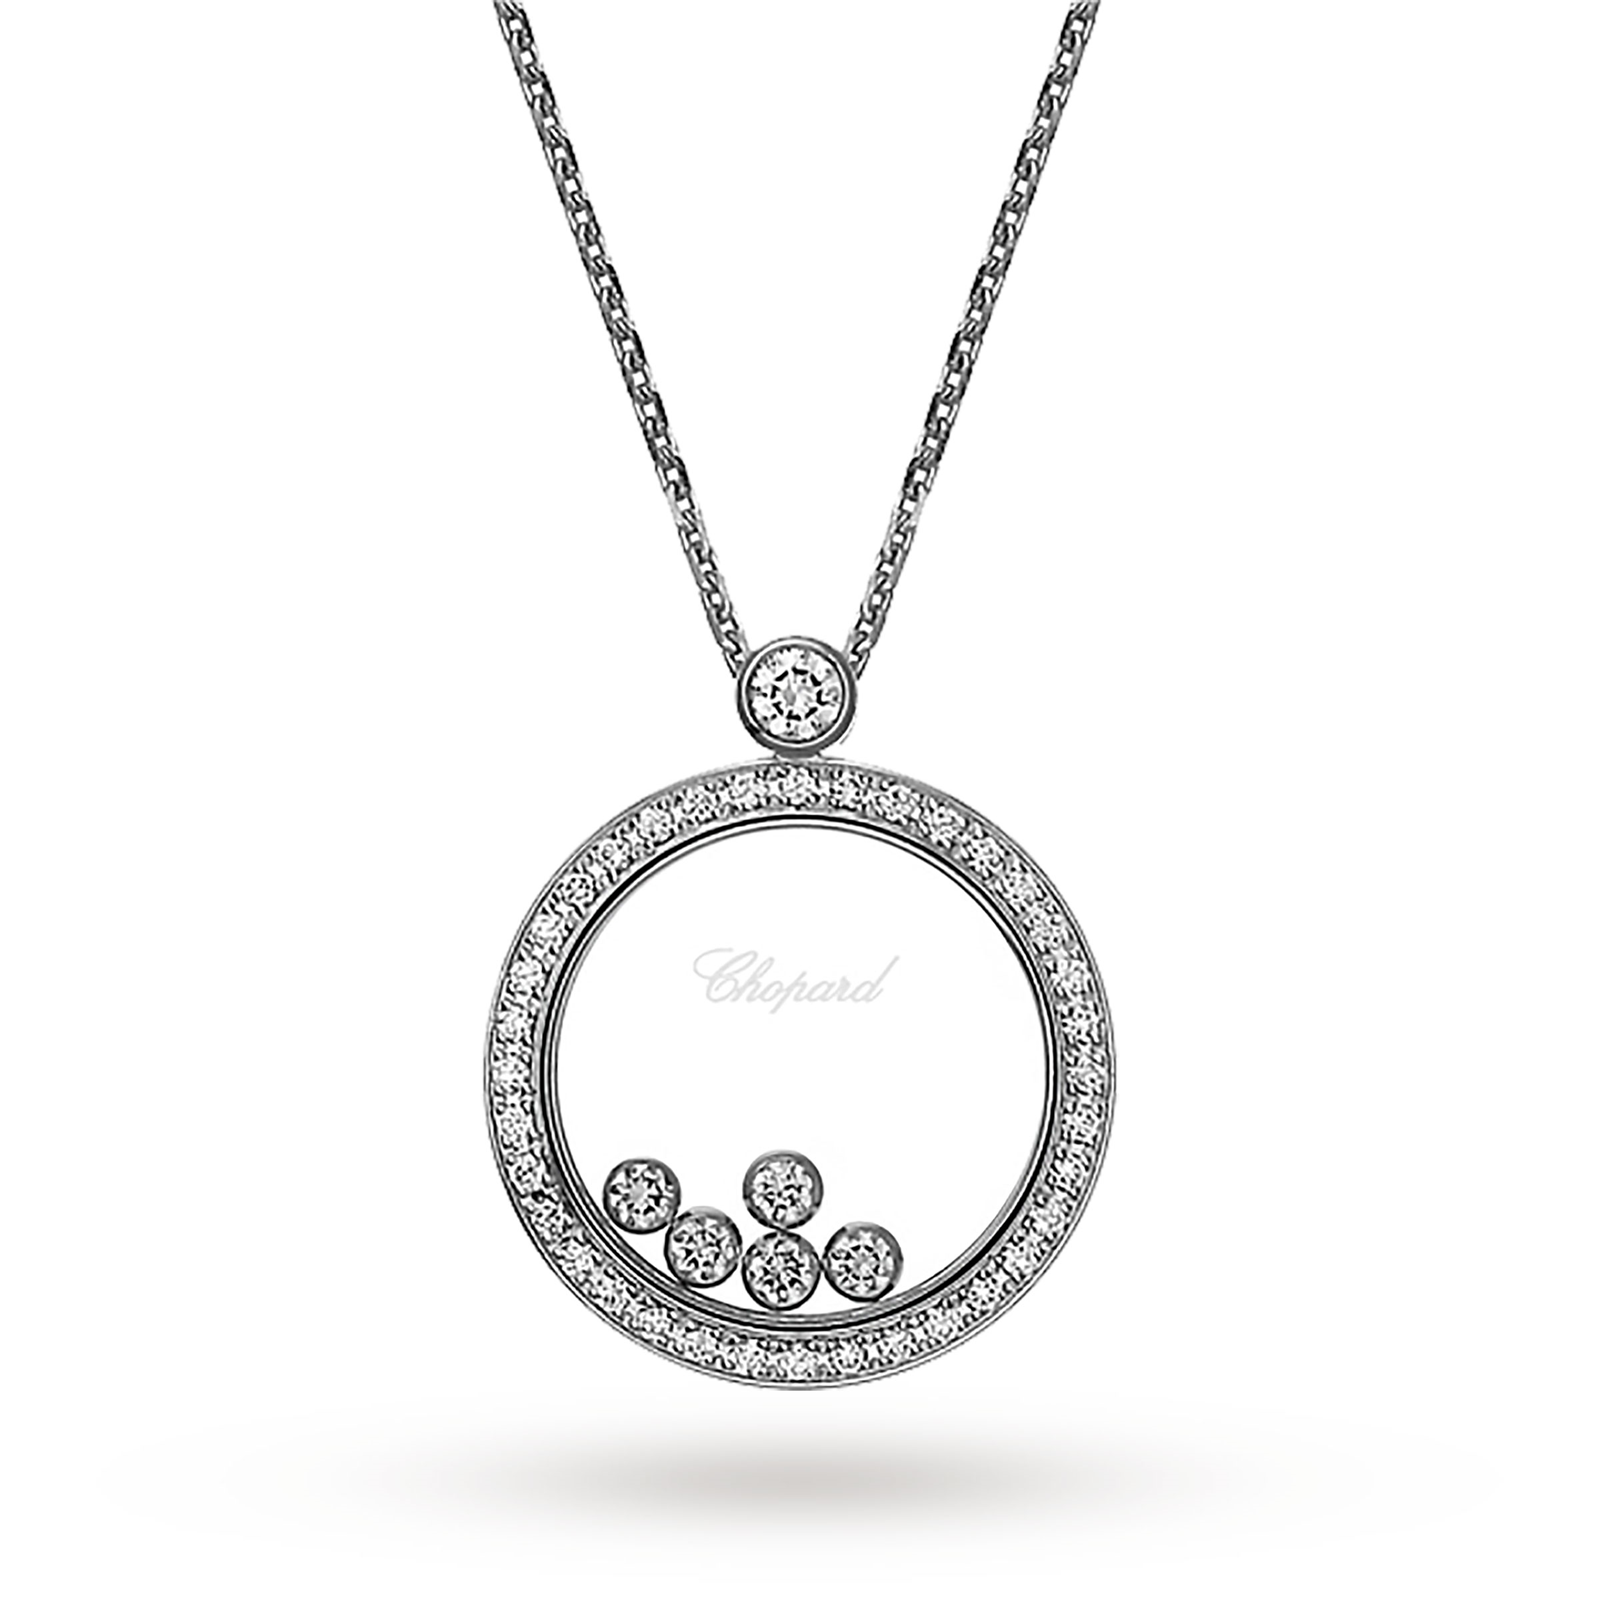 Chopard happy diamonds 18ct white gold pendant necklaces chopard happy diamonds 18ct white gold pendant aloadofball